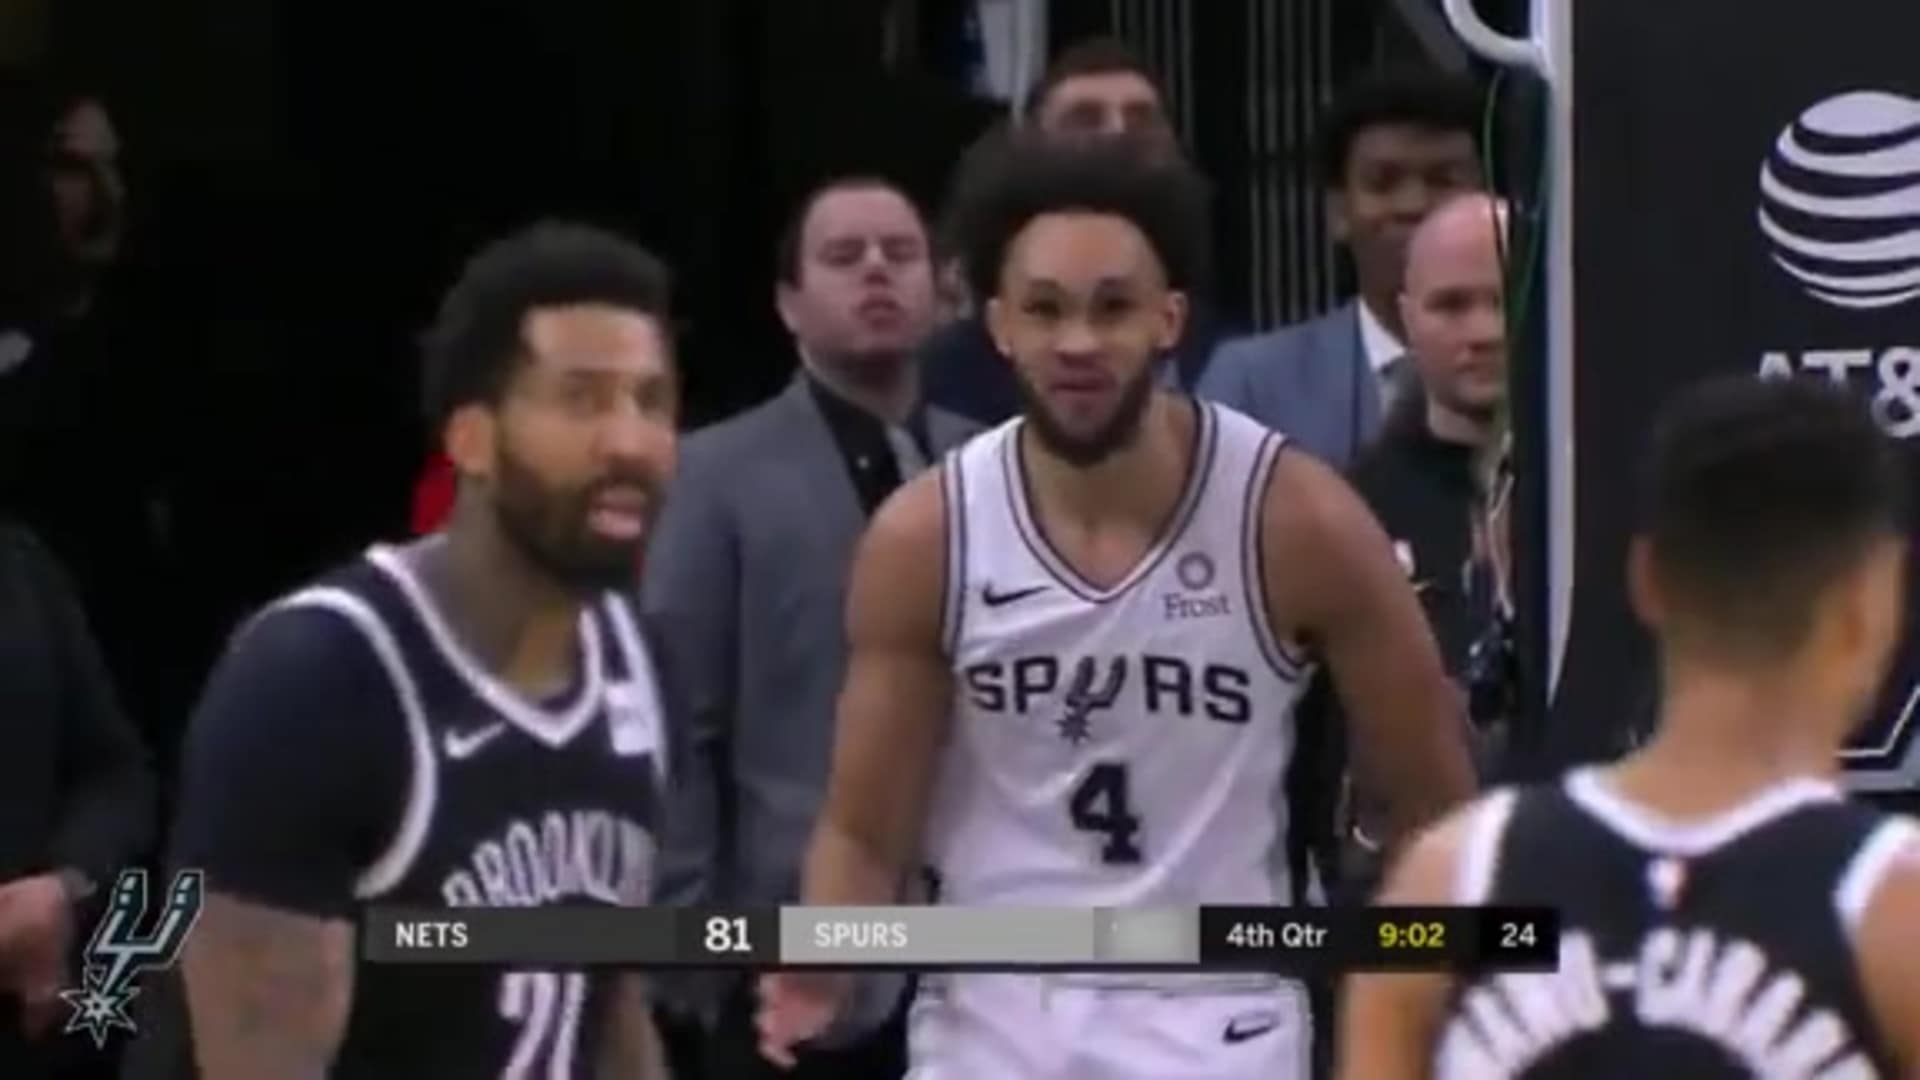 Highlights: Spurs vs. Nets 12/19